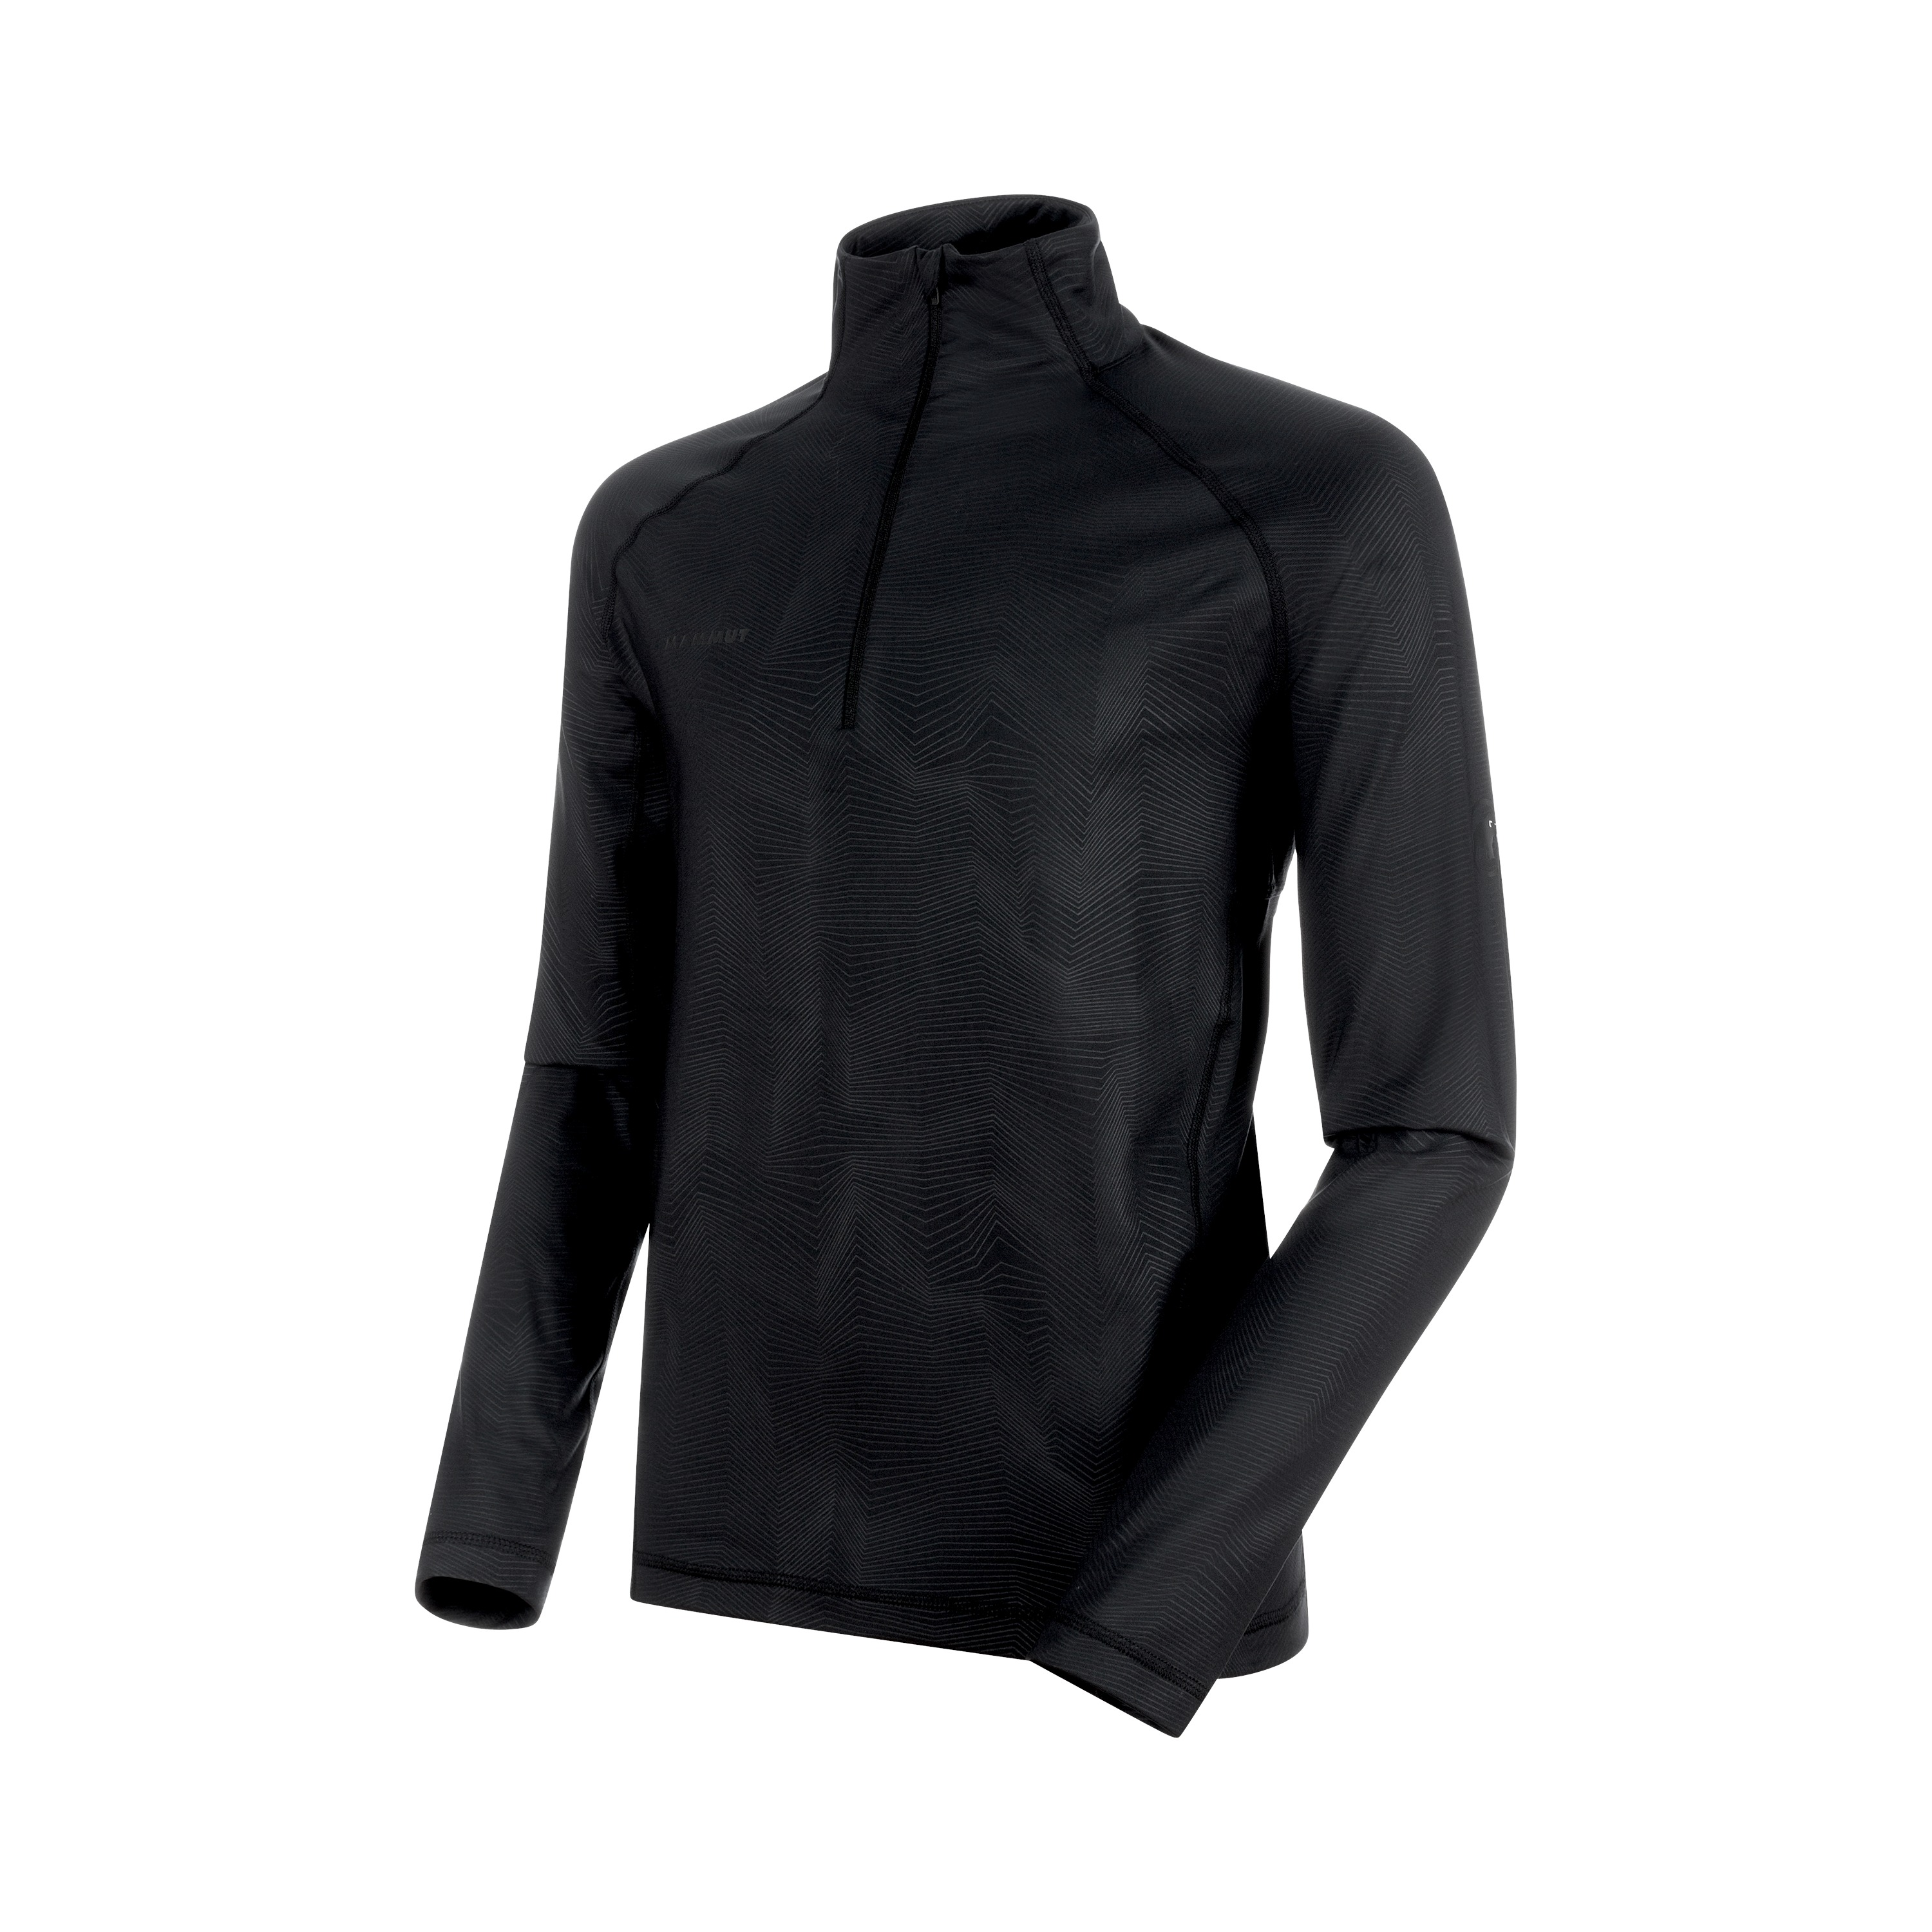 snow-ml-half-zip-pull-m_black-black_main5b91302c7b588